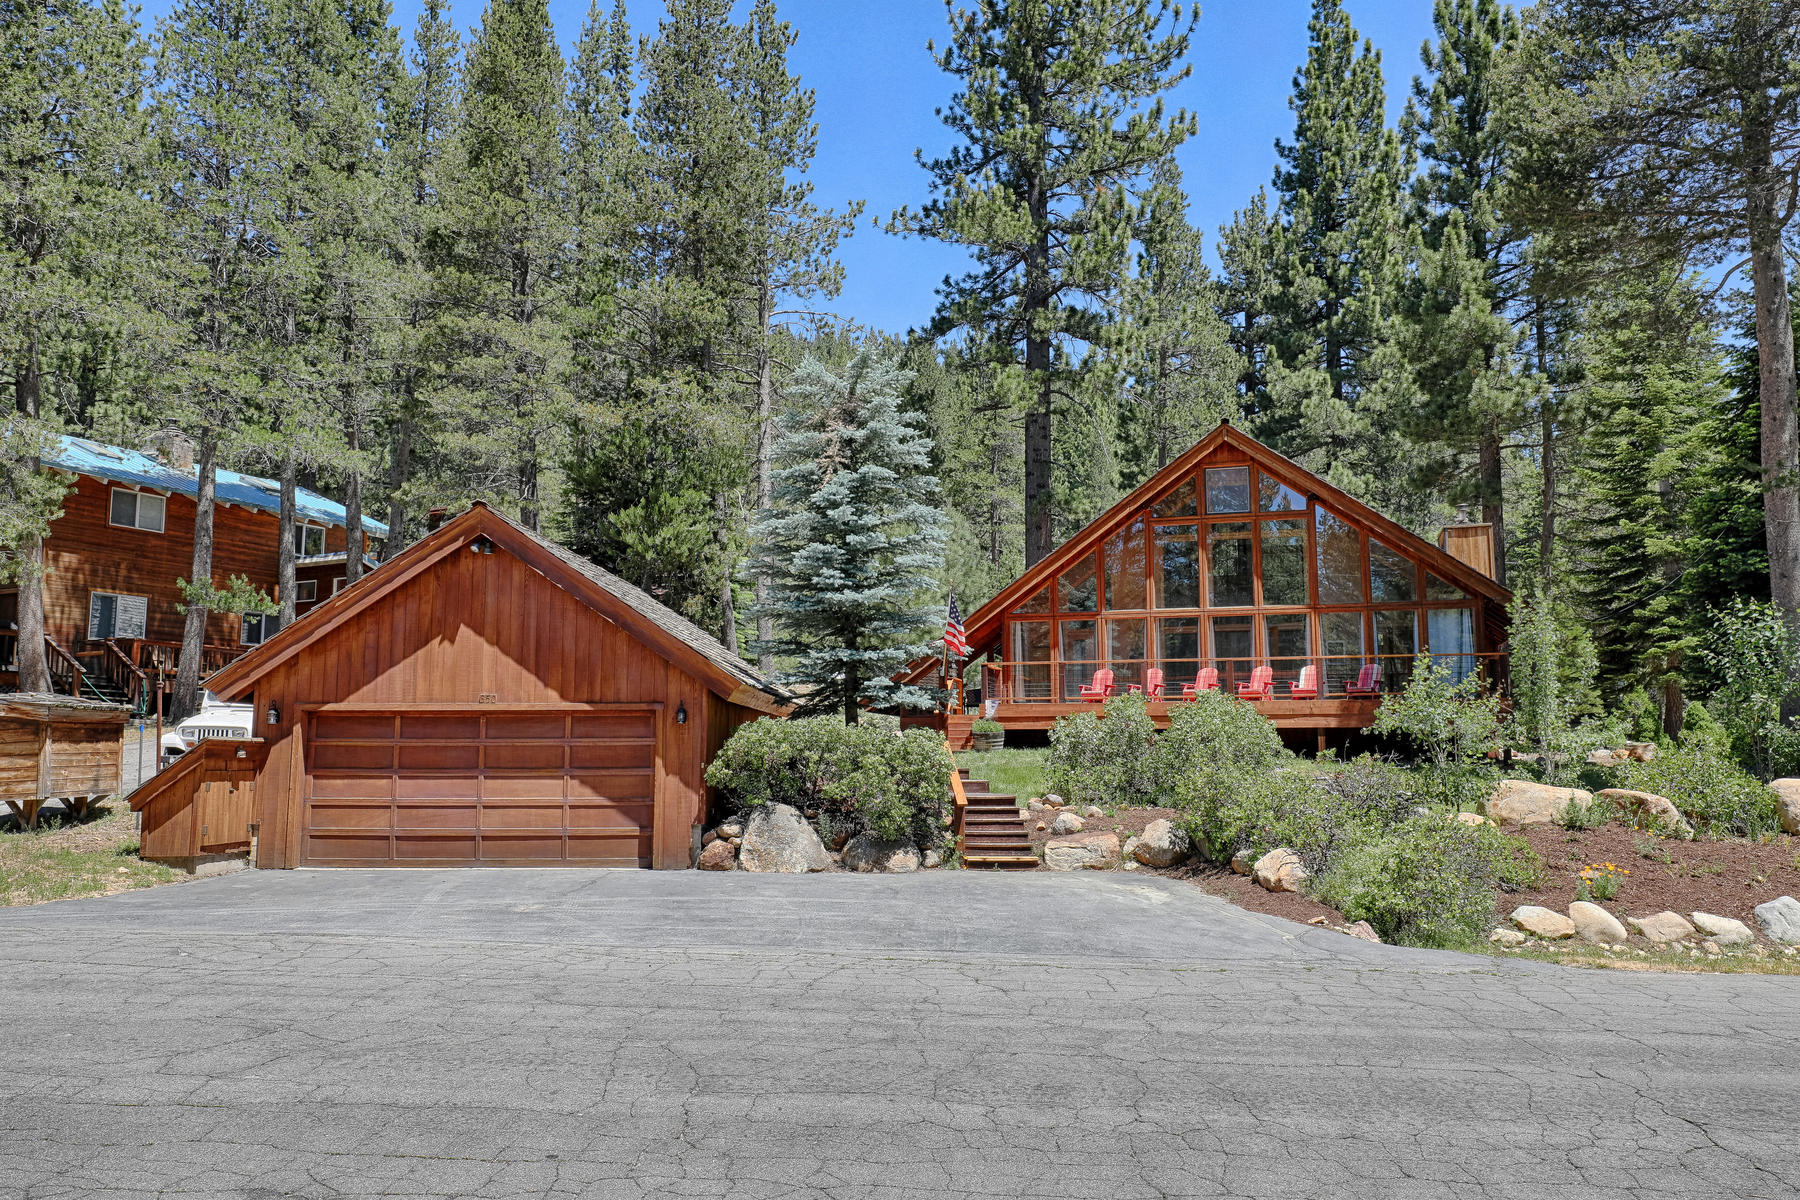 Additional photo for property listing at 350 Forest Glen Road, Olympic Valley CA 96146 350 Forest Glen Road Olympic Valley, California 96146 United States